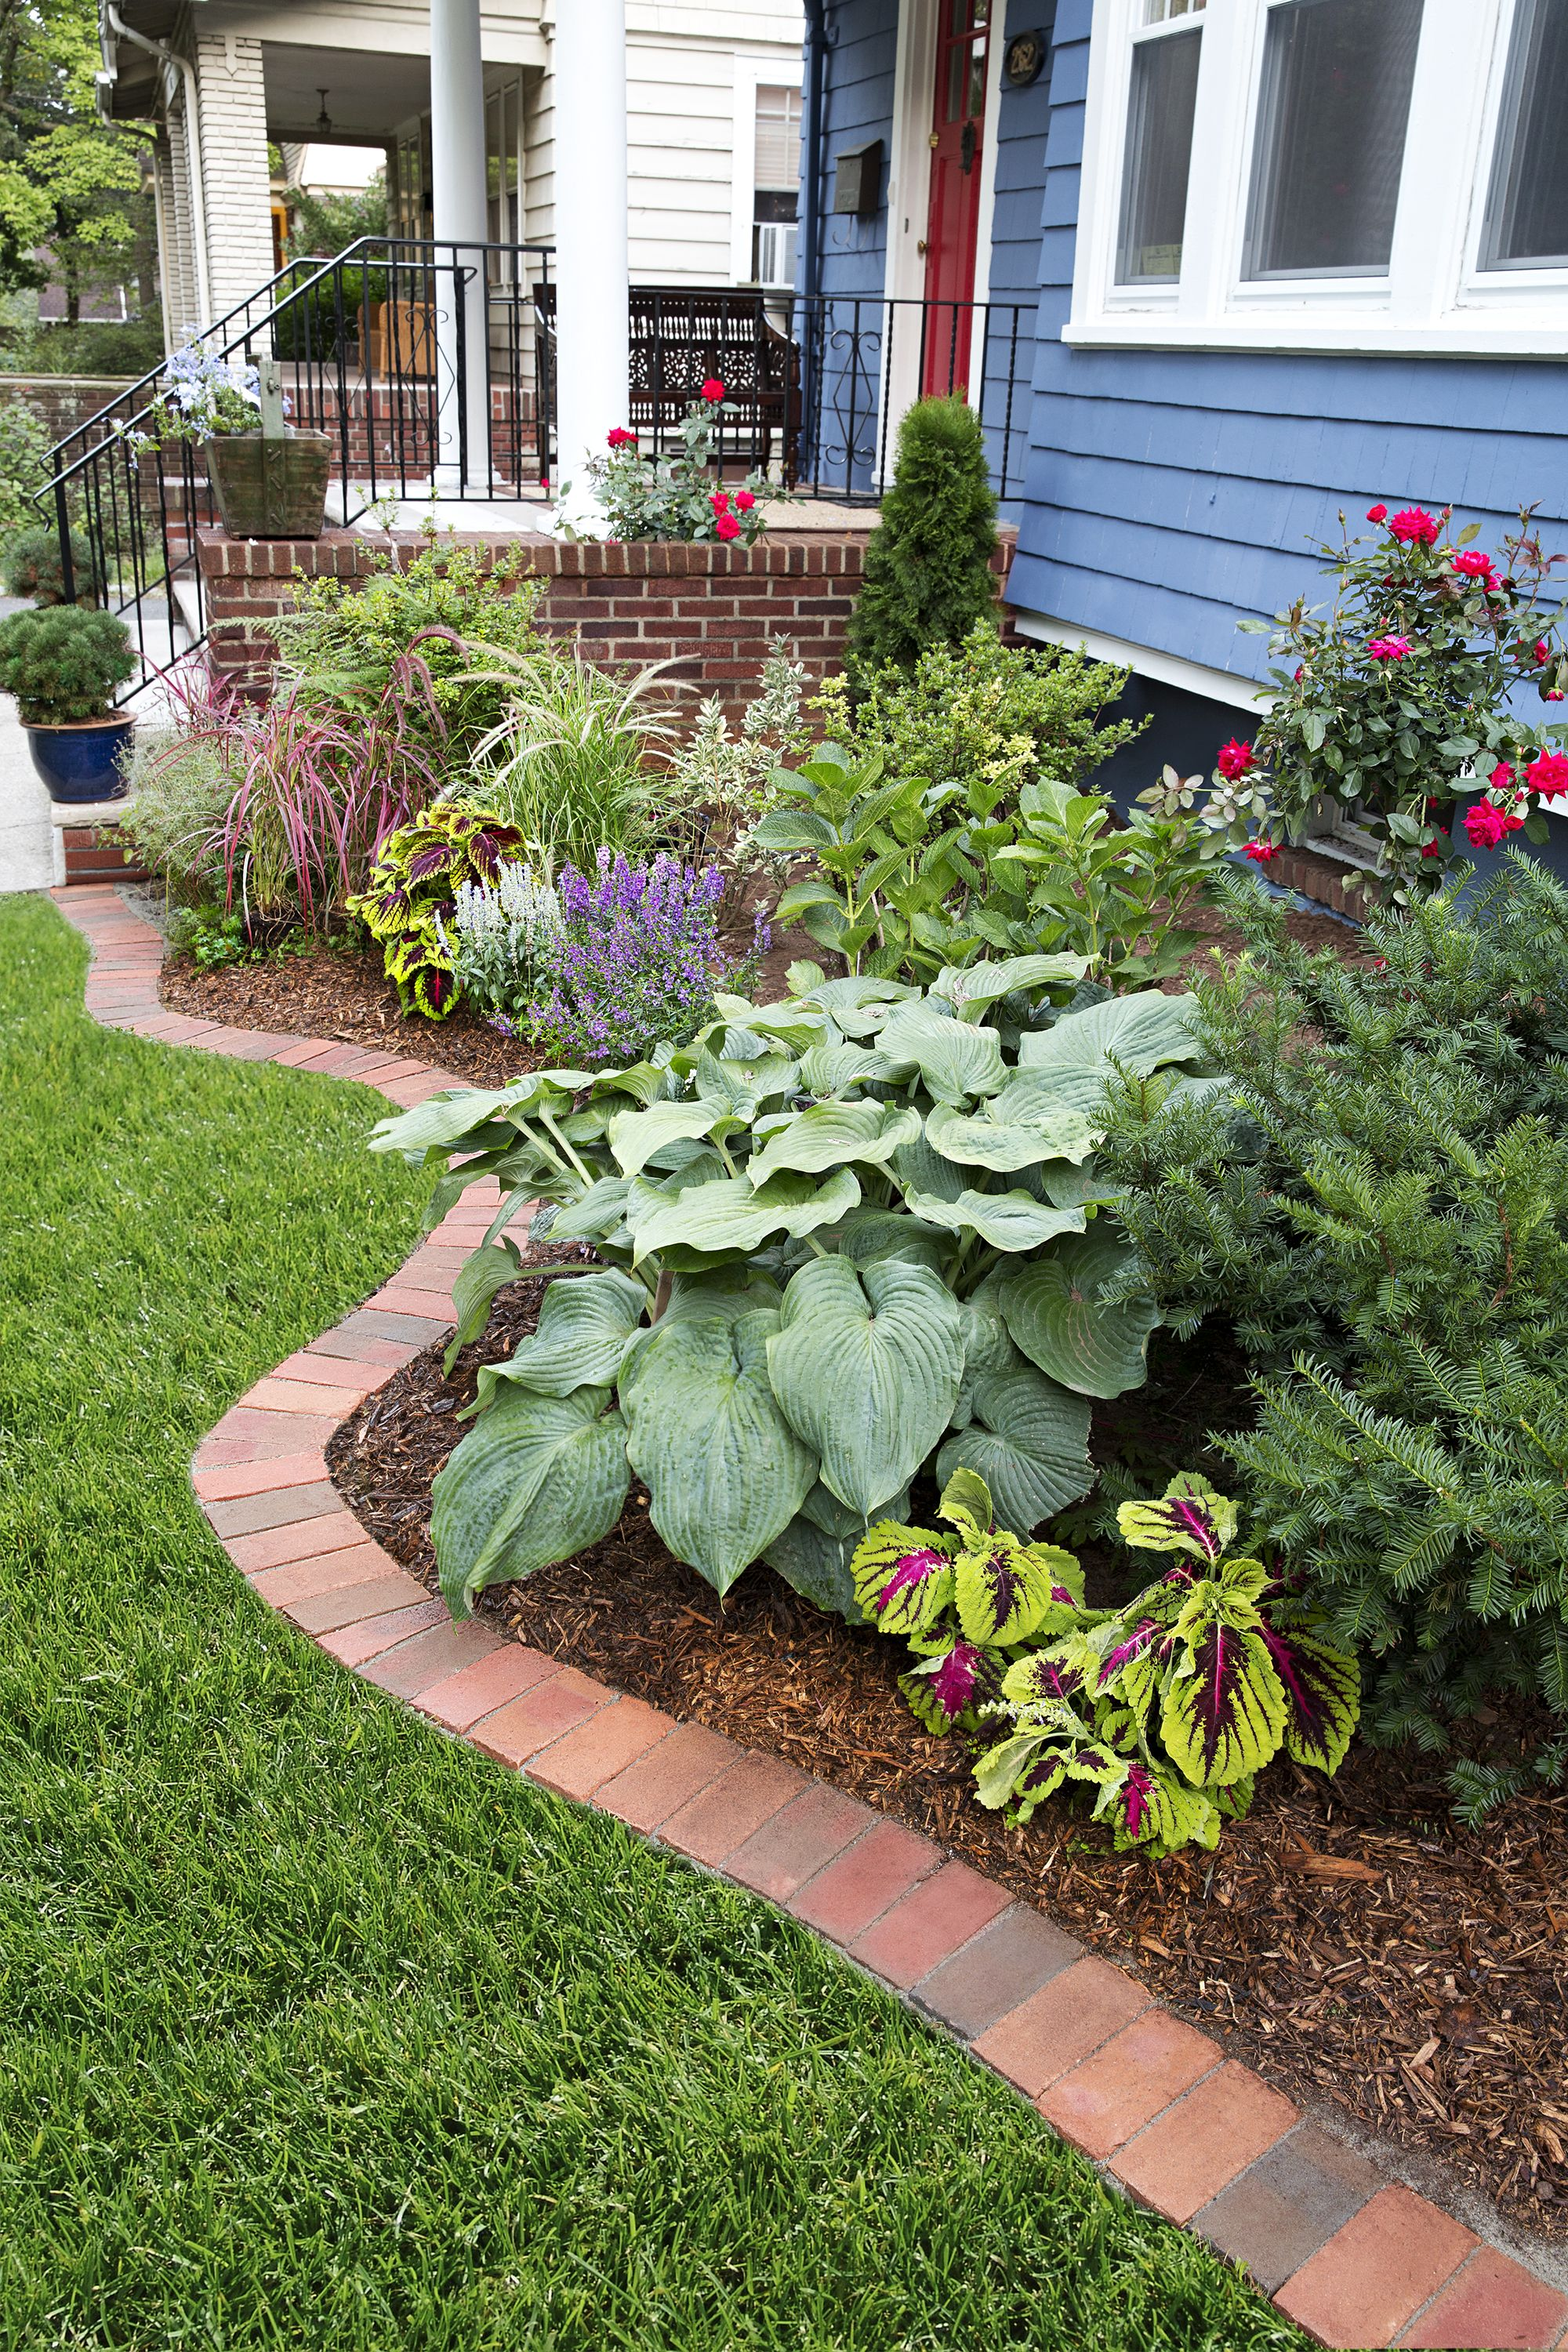 How To Edge A Garden Bed With Brick Brick Landscape Edging Brick Garden Brick Garden Edging